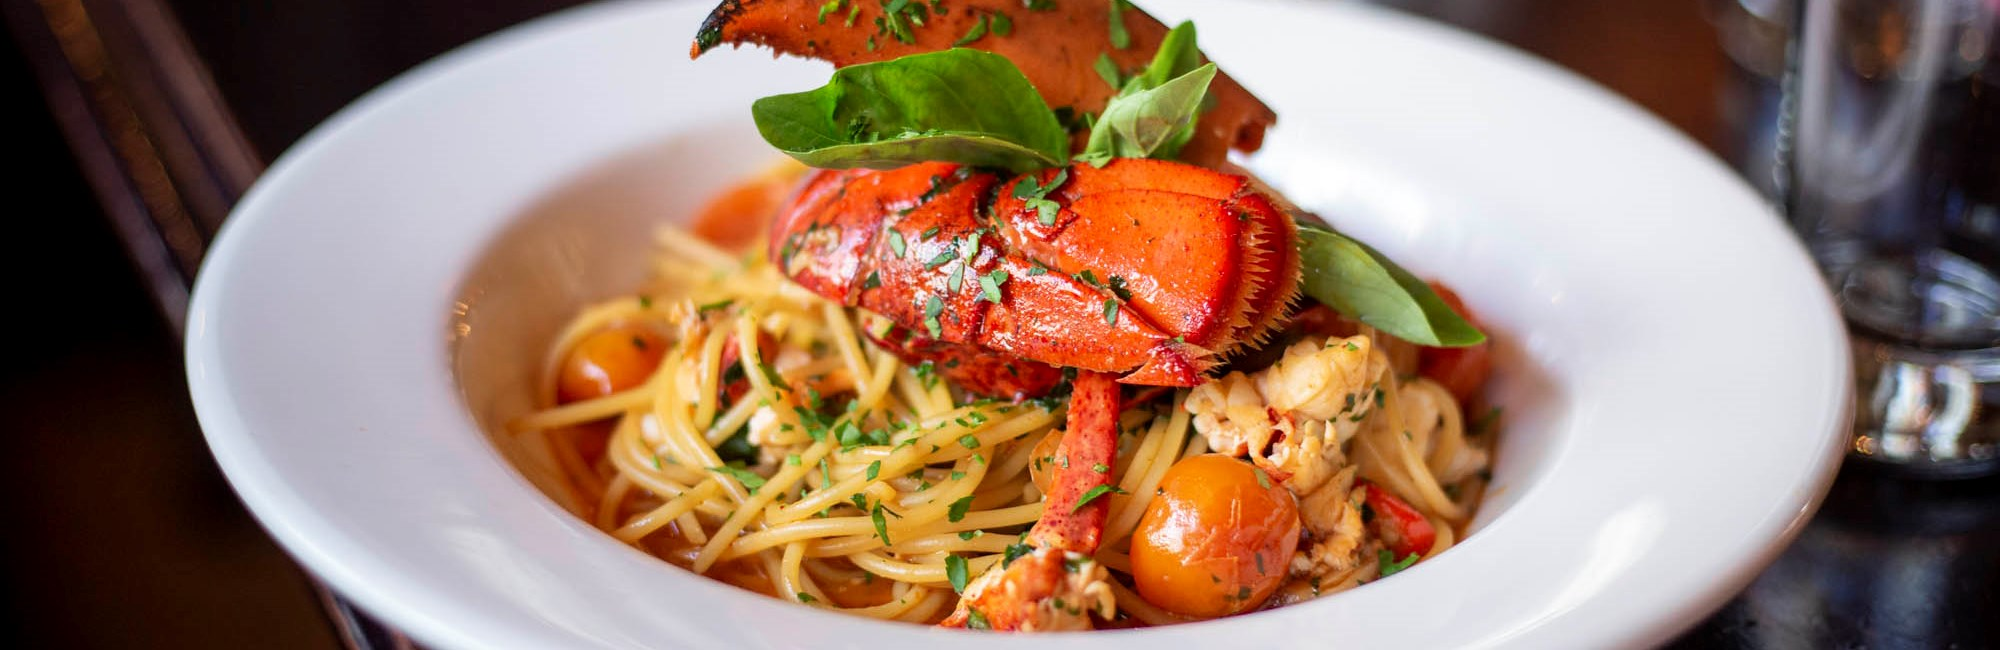 lobster spaghetti with piment despelette 25